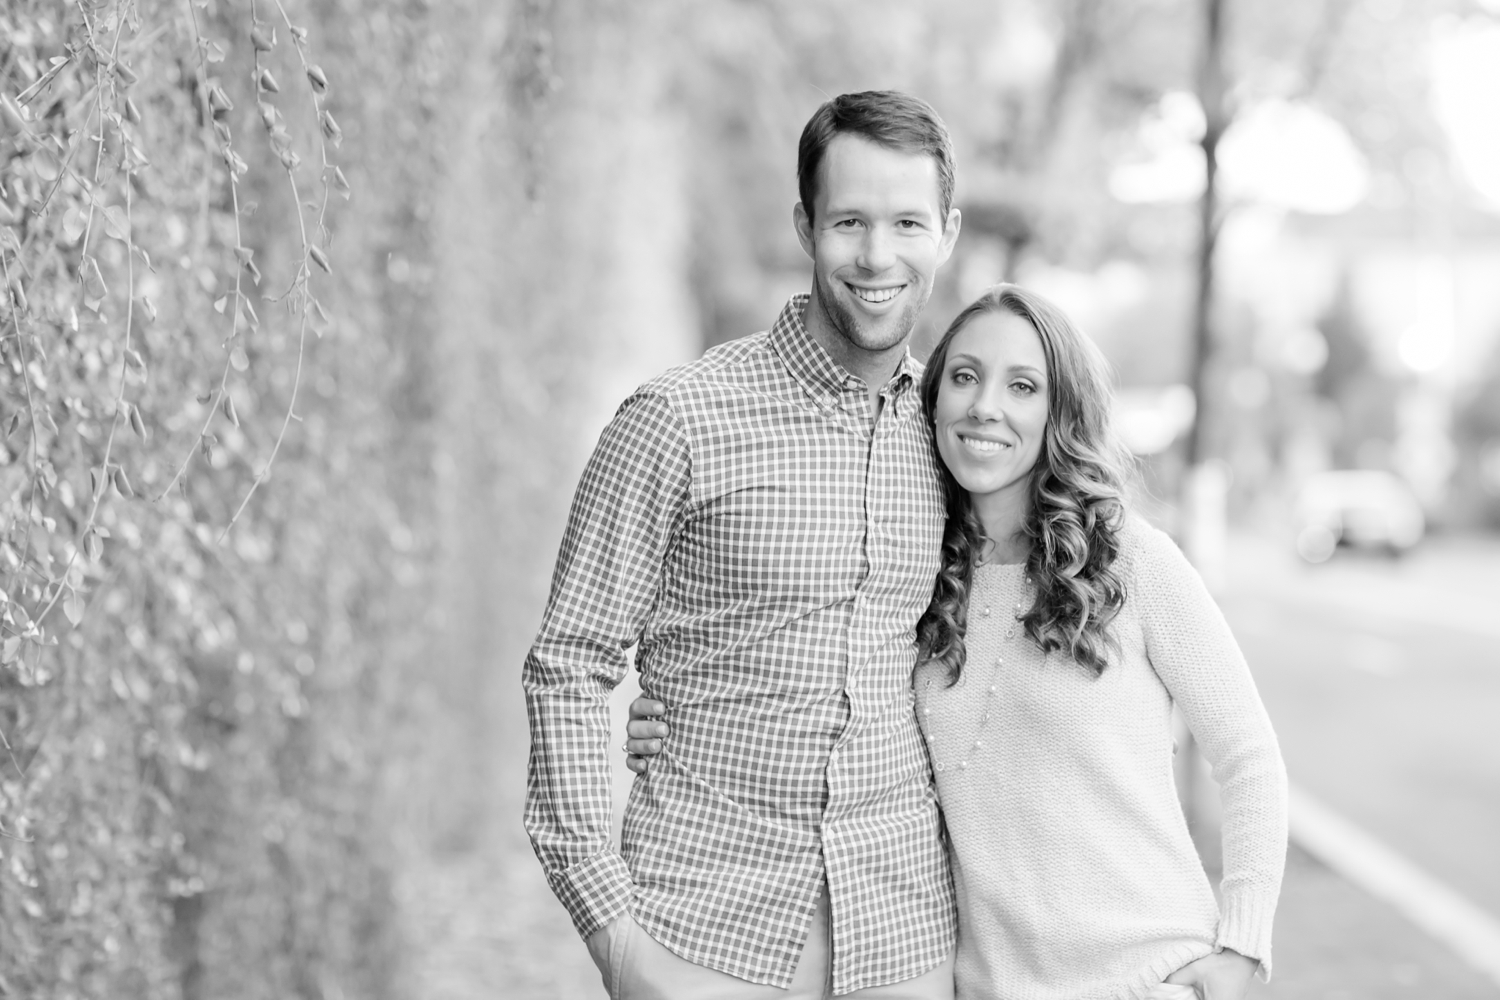 Emily Schroeder & Brian Malat Engagement-205_Georgetown-DC-engagement-virginia-engagement-photographer-anna-grace-photography-photo.jpg